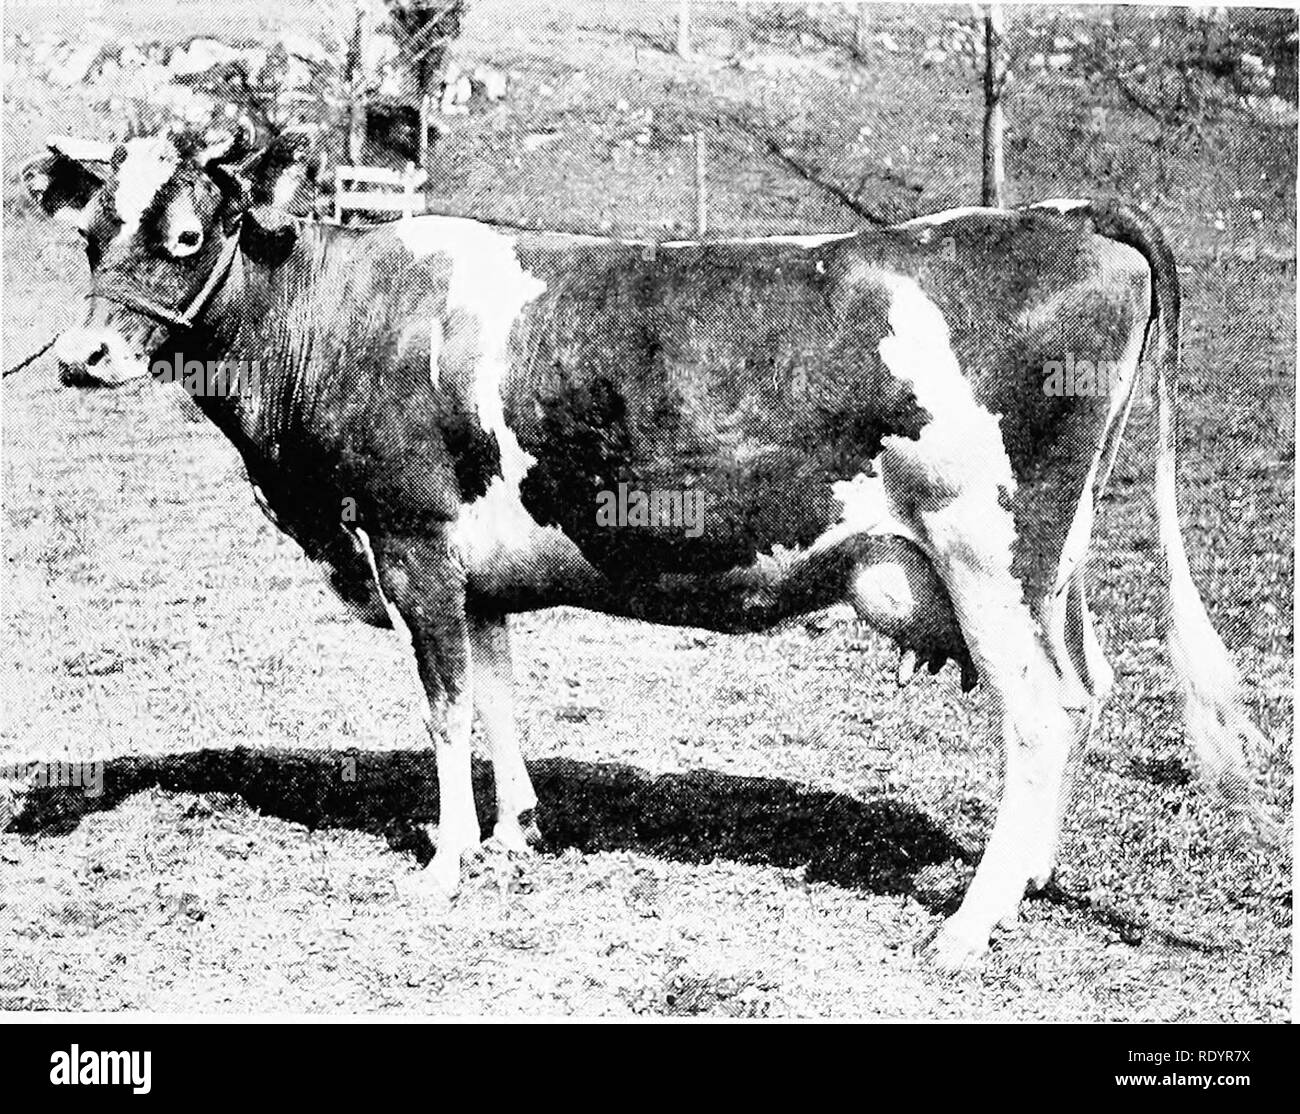 . The Guernsey breed. Guernsey cattle. The Guernsey Breed 317. Imp. Lady Blanche 11 of the Ilougues ilagues 33062. Imp. Masher's Sequel 11.462, A, R. sire of Imp. Lady Archer XII 17559, A, R. 473, E 408.69 dam of Sir Masher 11082, A. R. sire of Sunnyside Marie 42697, A. R. 2506, G 429.18 Masher's Florence of Sunnyside 26743, A. R. 2651, C 434.09 Sir Masher's Josephine of Sunnyside 37560, A. R. 2863, G. 347.83 Archer of Chilmark 13376, A. R. sire of Archer's Golden Lenore 32636, A. R. 2753, F 361.43 Chilmark's Replica 36259, A. R. 3083, G 425.72 Archer's Queen of Chilmark 32629, A. R. 3015, E 3 Stock Photo